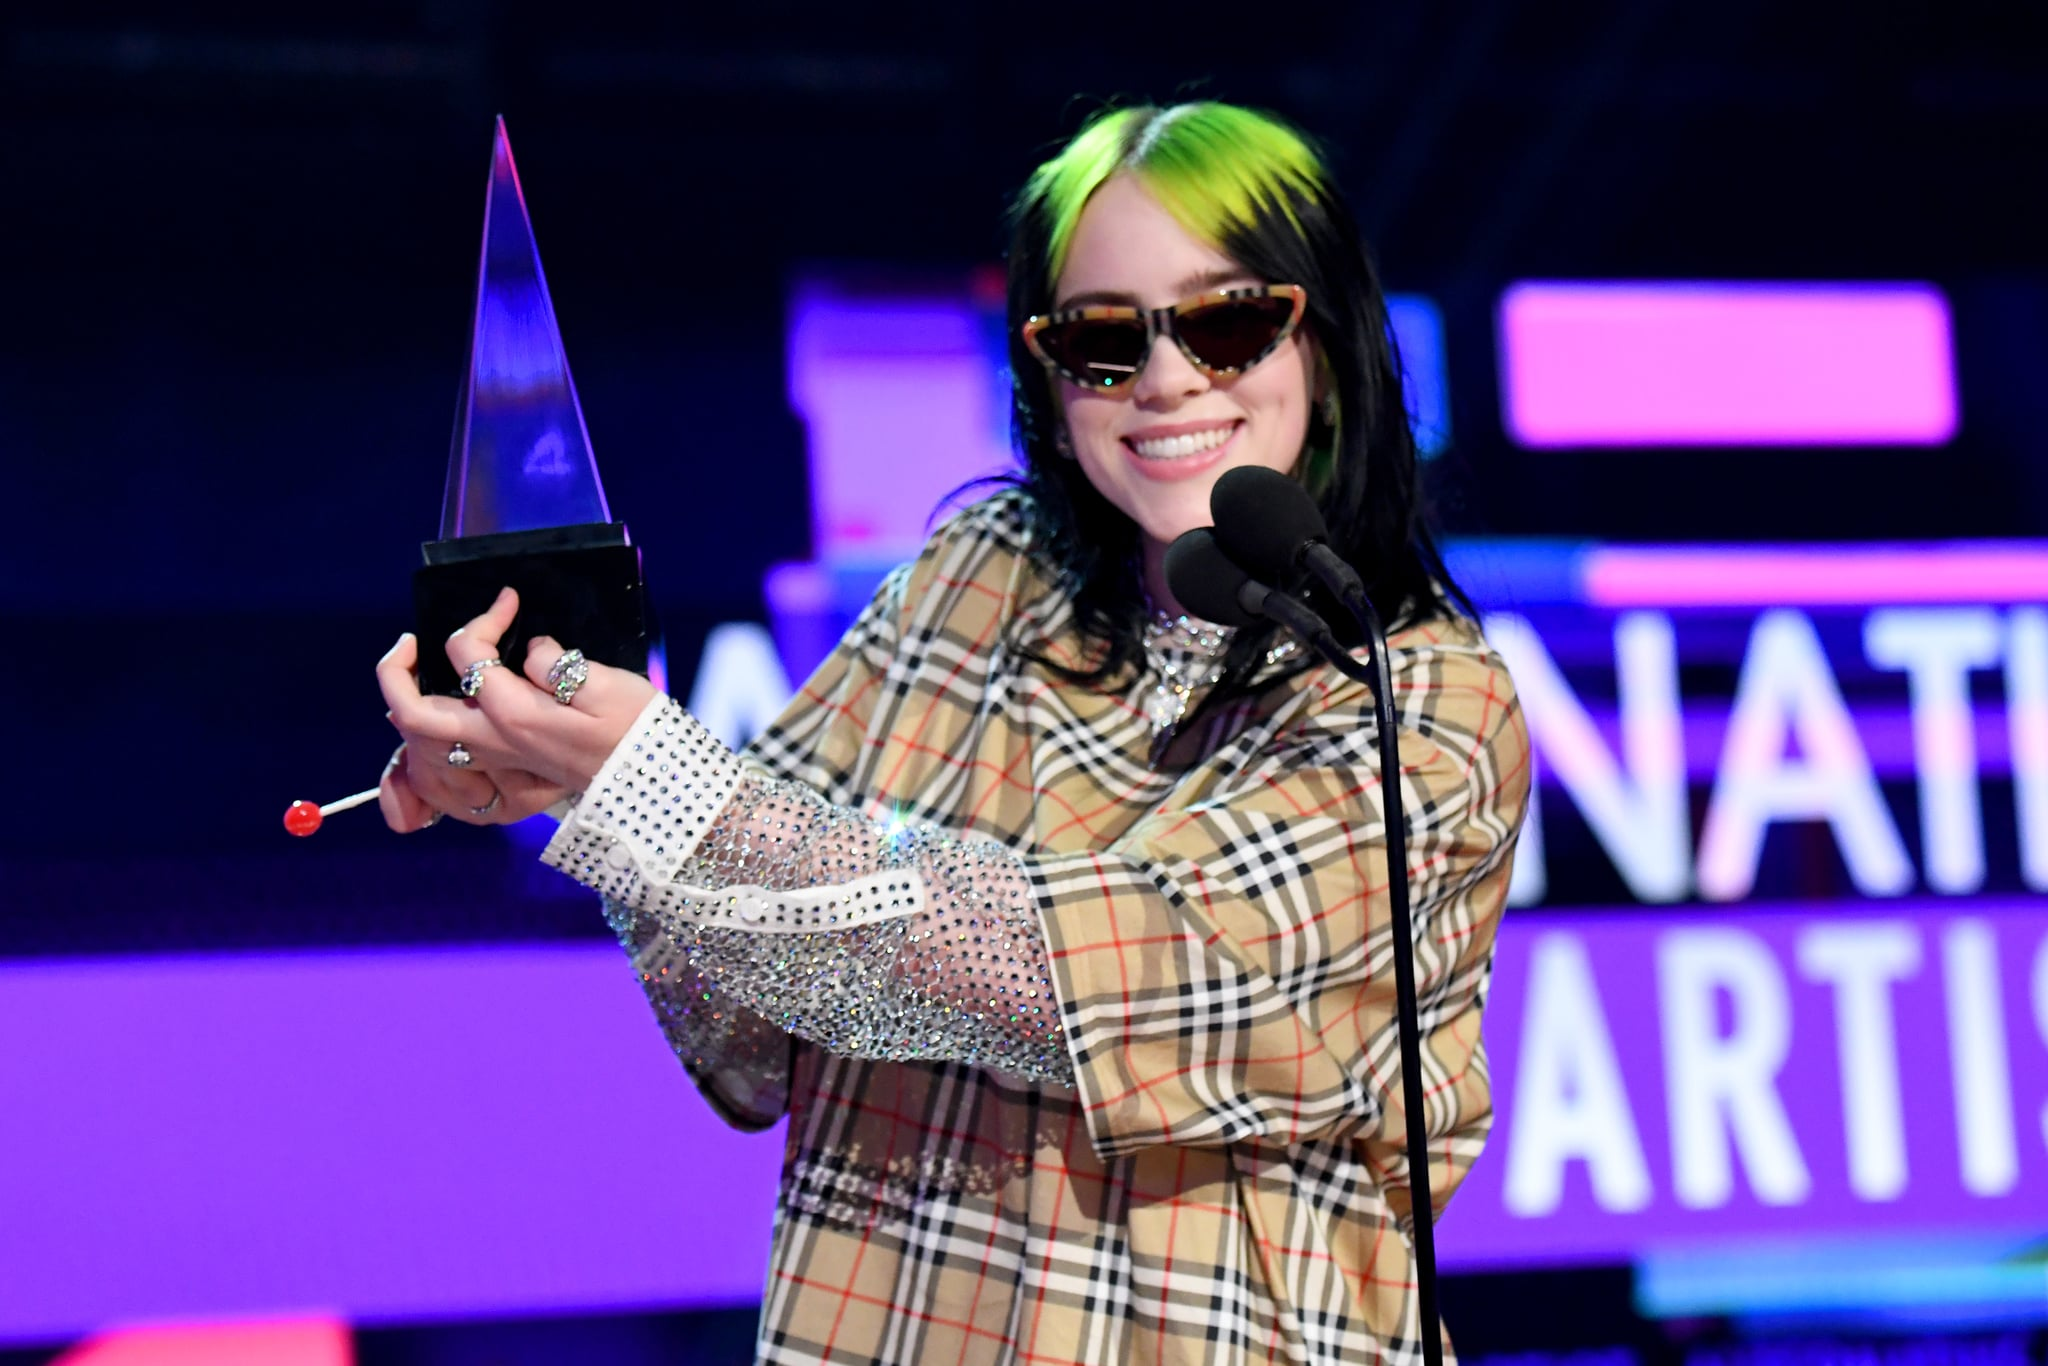 LOS ANGELES, CALIFORNIA - NOVEMBER 24: Billie Eilish accepts the Favourite Artist - Alternative Rock award onstage during the 2019 American Music Awards at Microsoft Theatre on November 24, 2019 in Los Angeles, California. (Photo by Jeff Kravitz/AMA2019/FilmMagic for dcp)